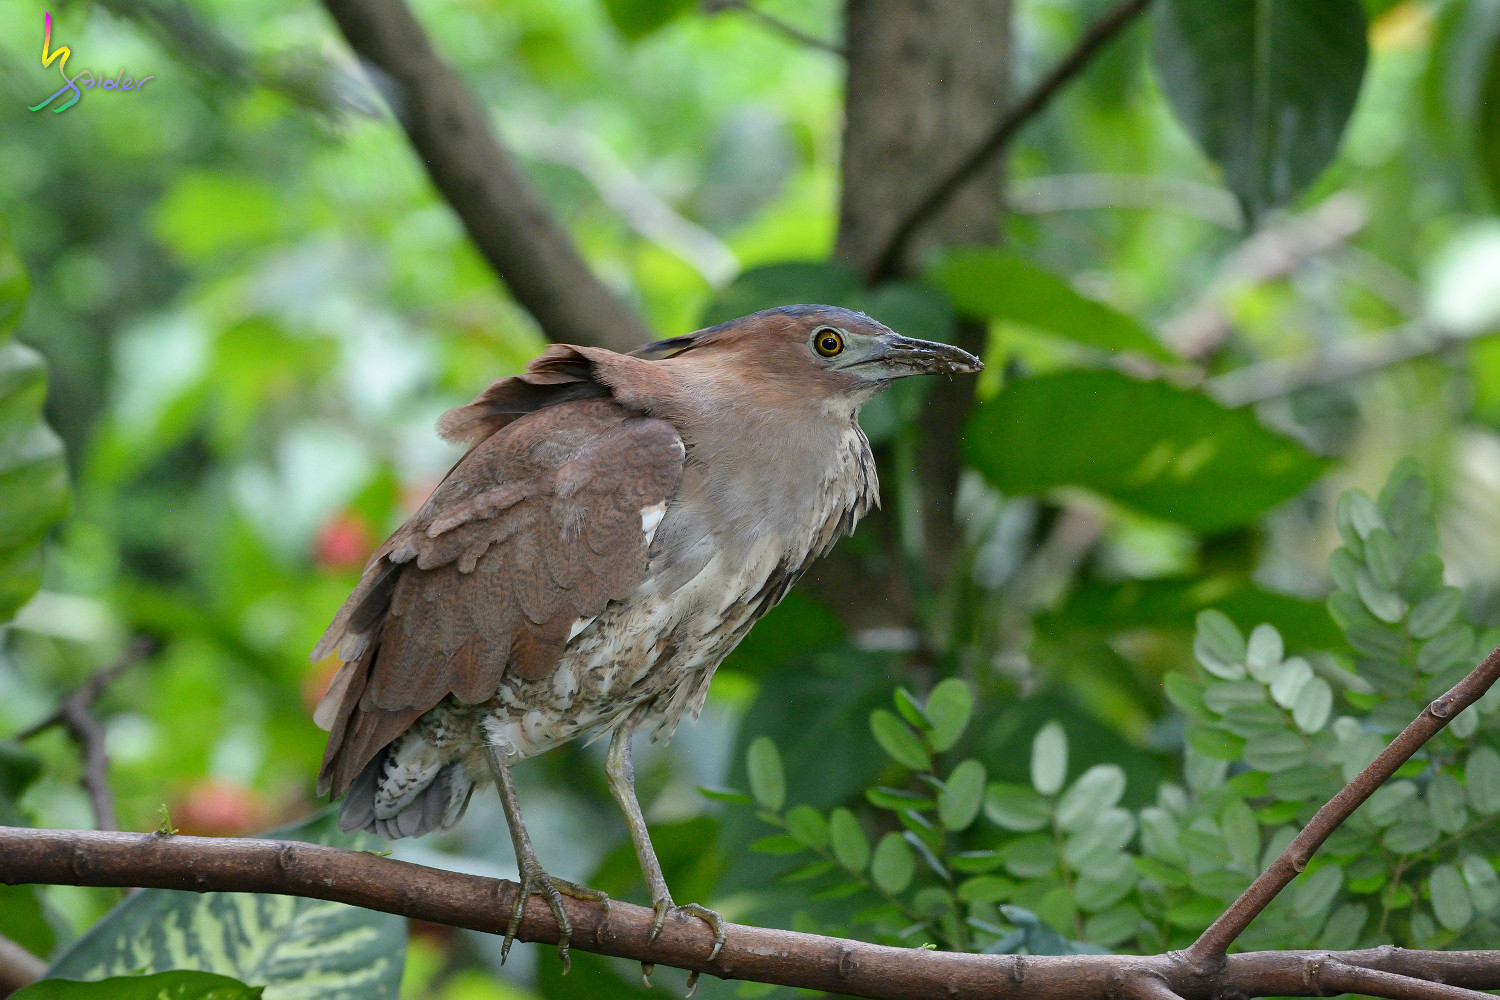 Malayan_Night_Heron_5357